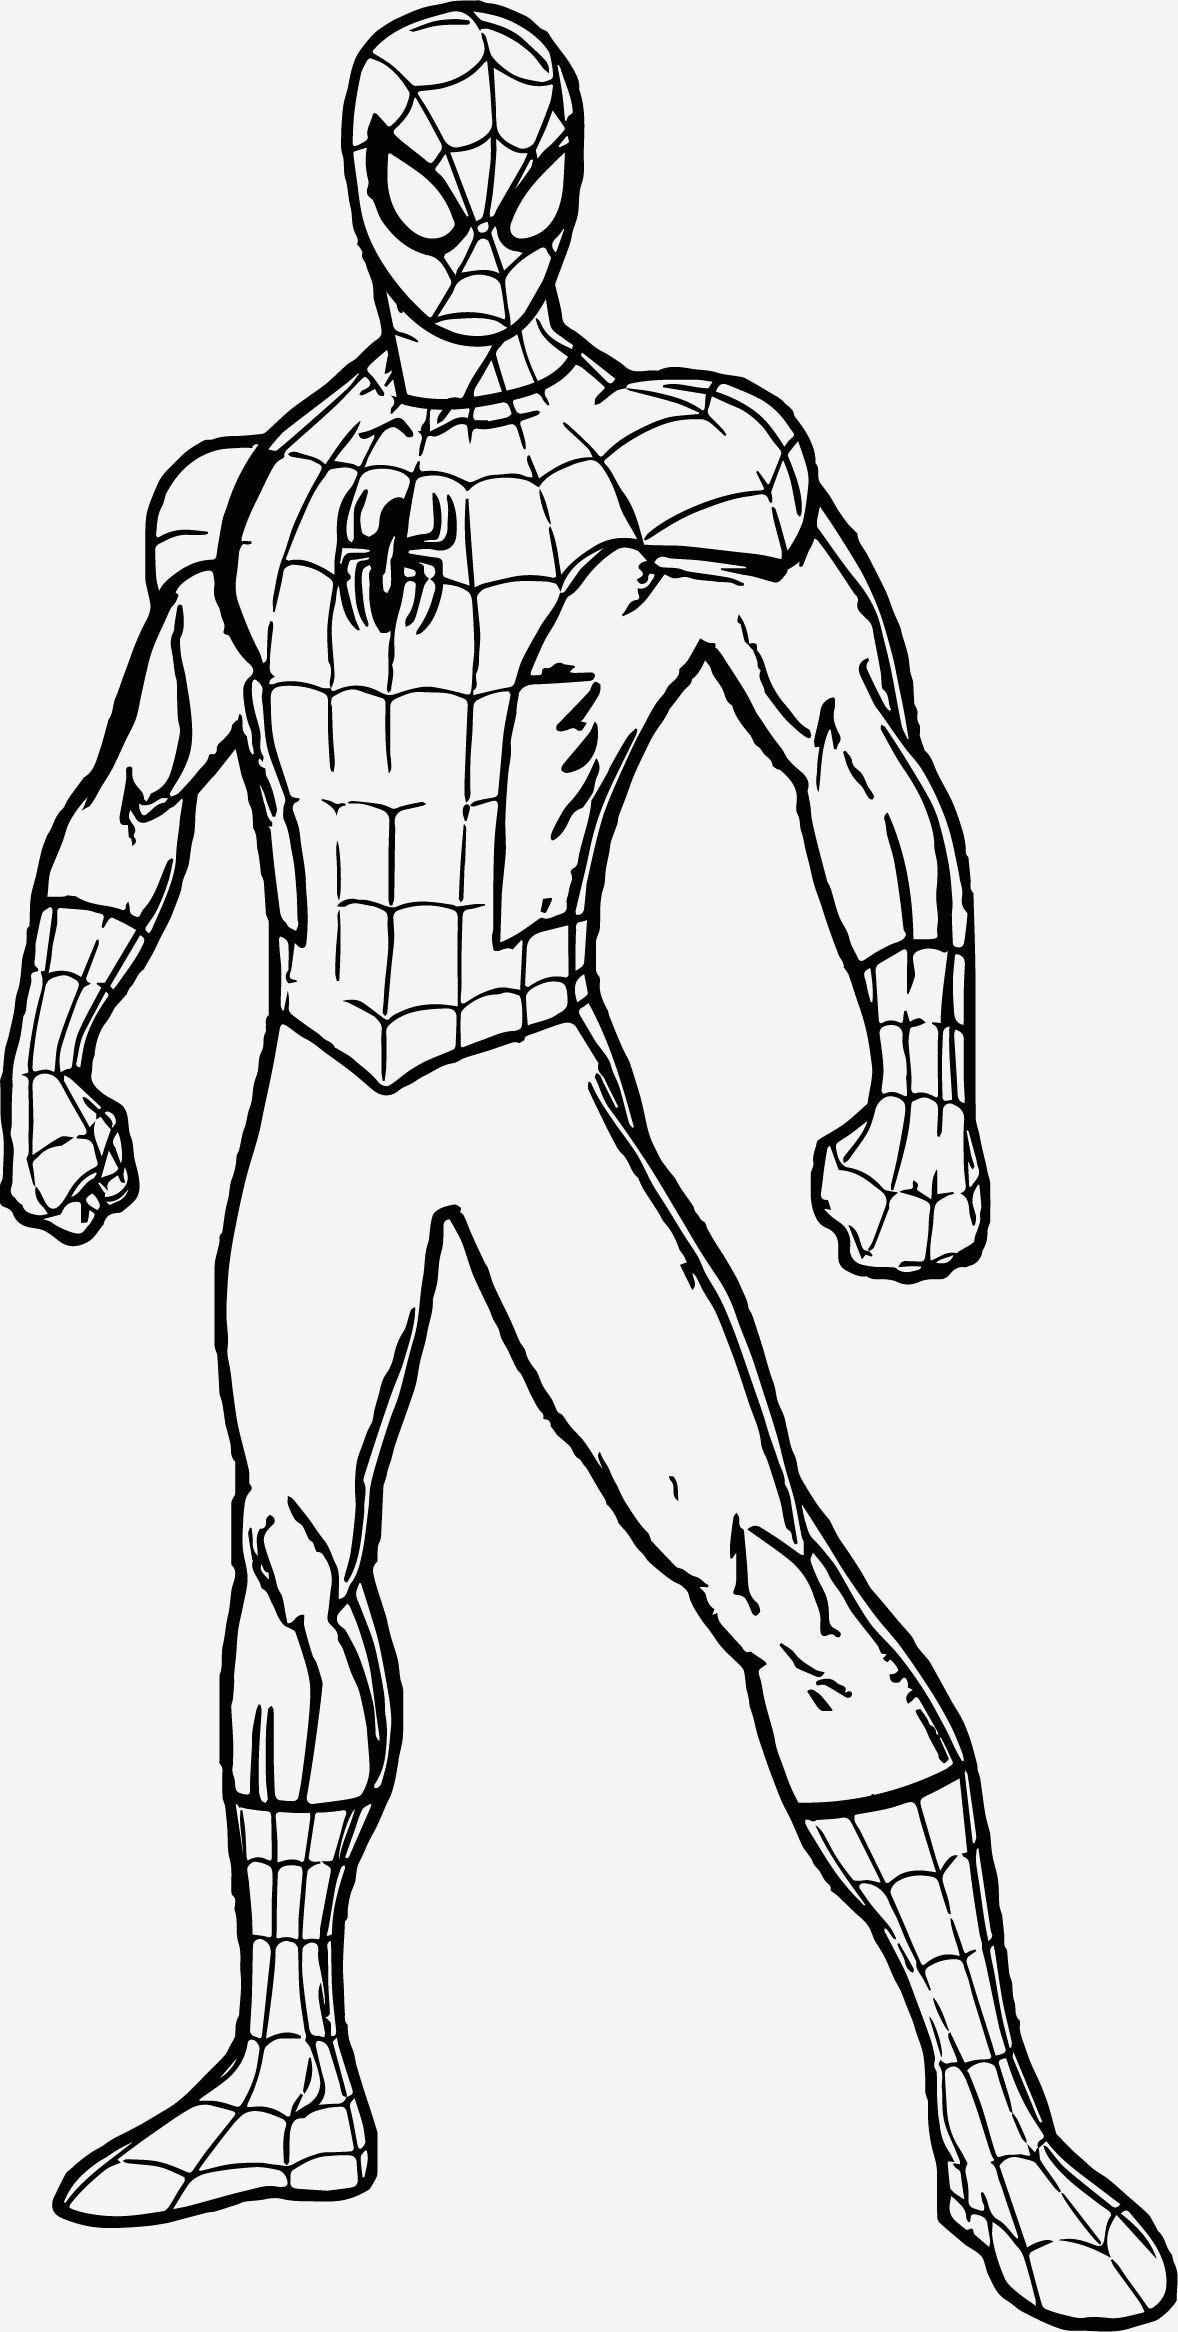 Free Spiderman Coloring Pages 016 Malbuch Free Printable Spiderman